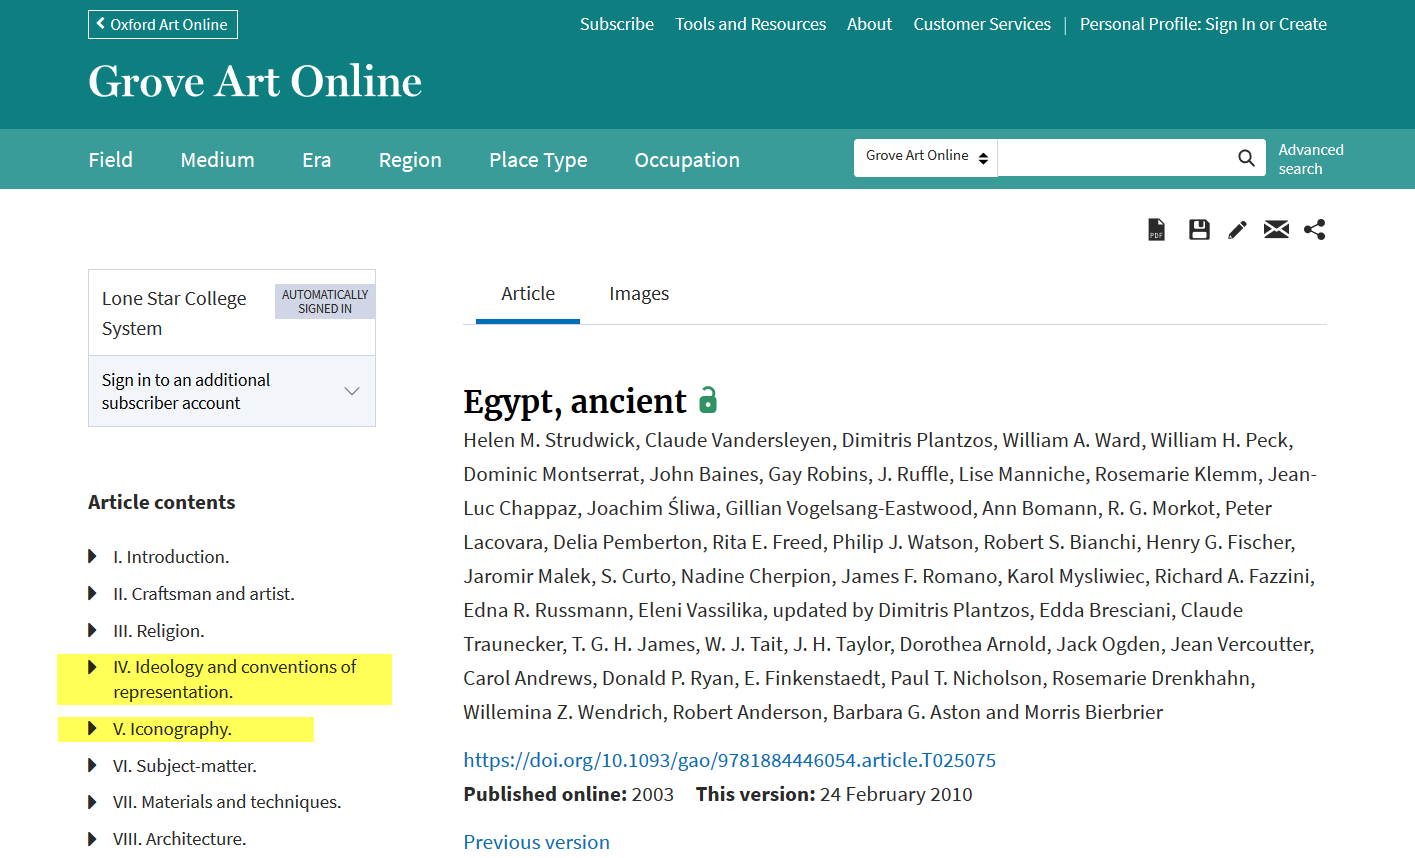 """Screenshot of an article from Oxford Art: Grove Art Online for """"Egypt, ancient."""" The article's headings are listed on the left a table of contents, and 2 headings relating to iconography are highlighted."""